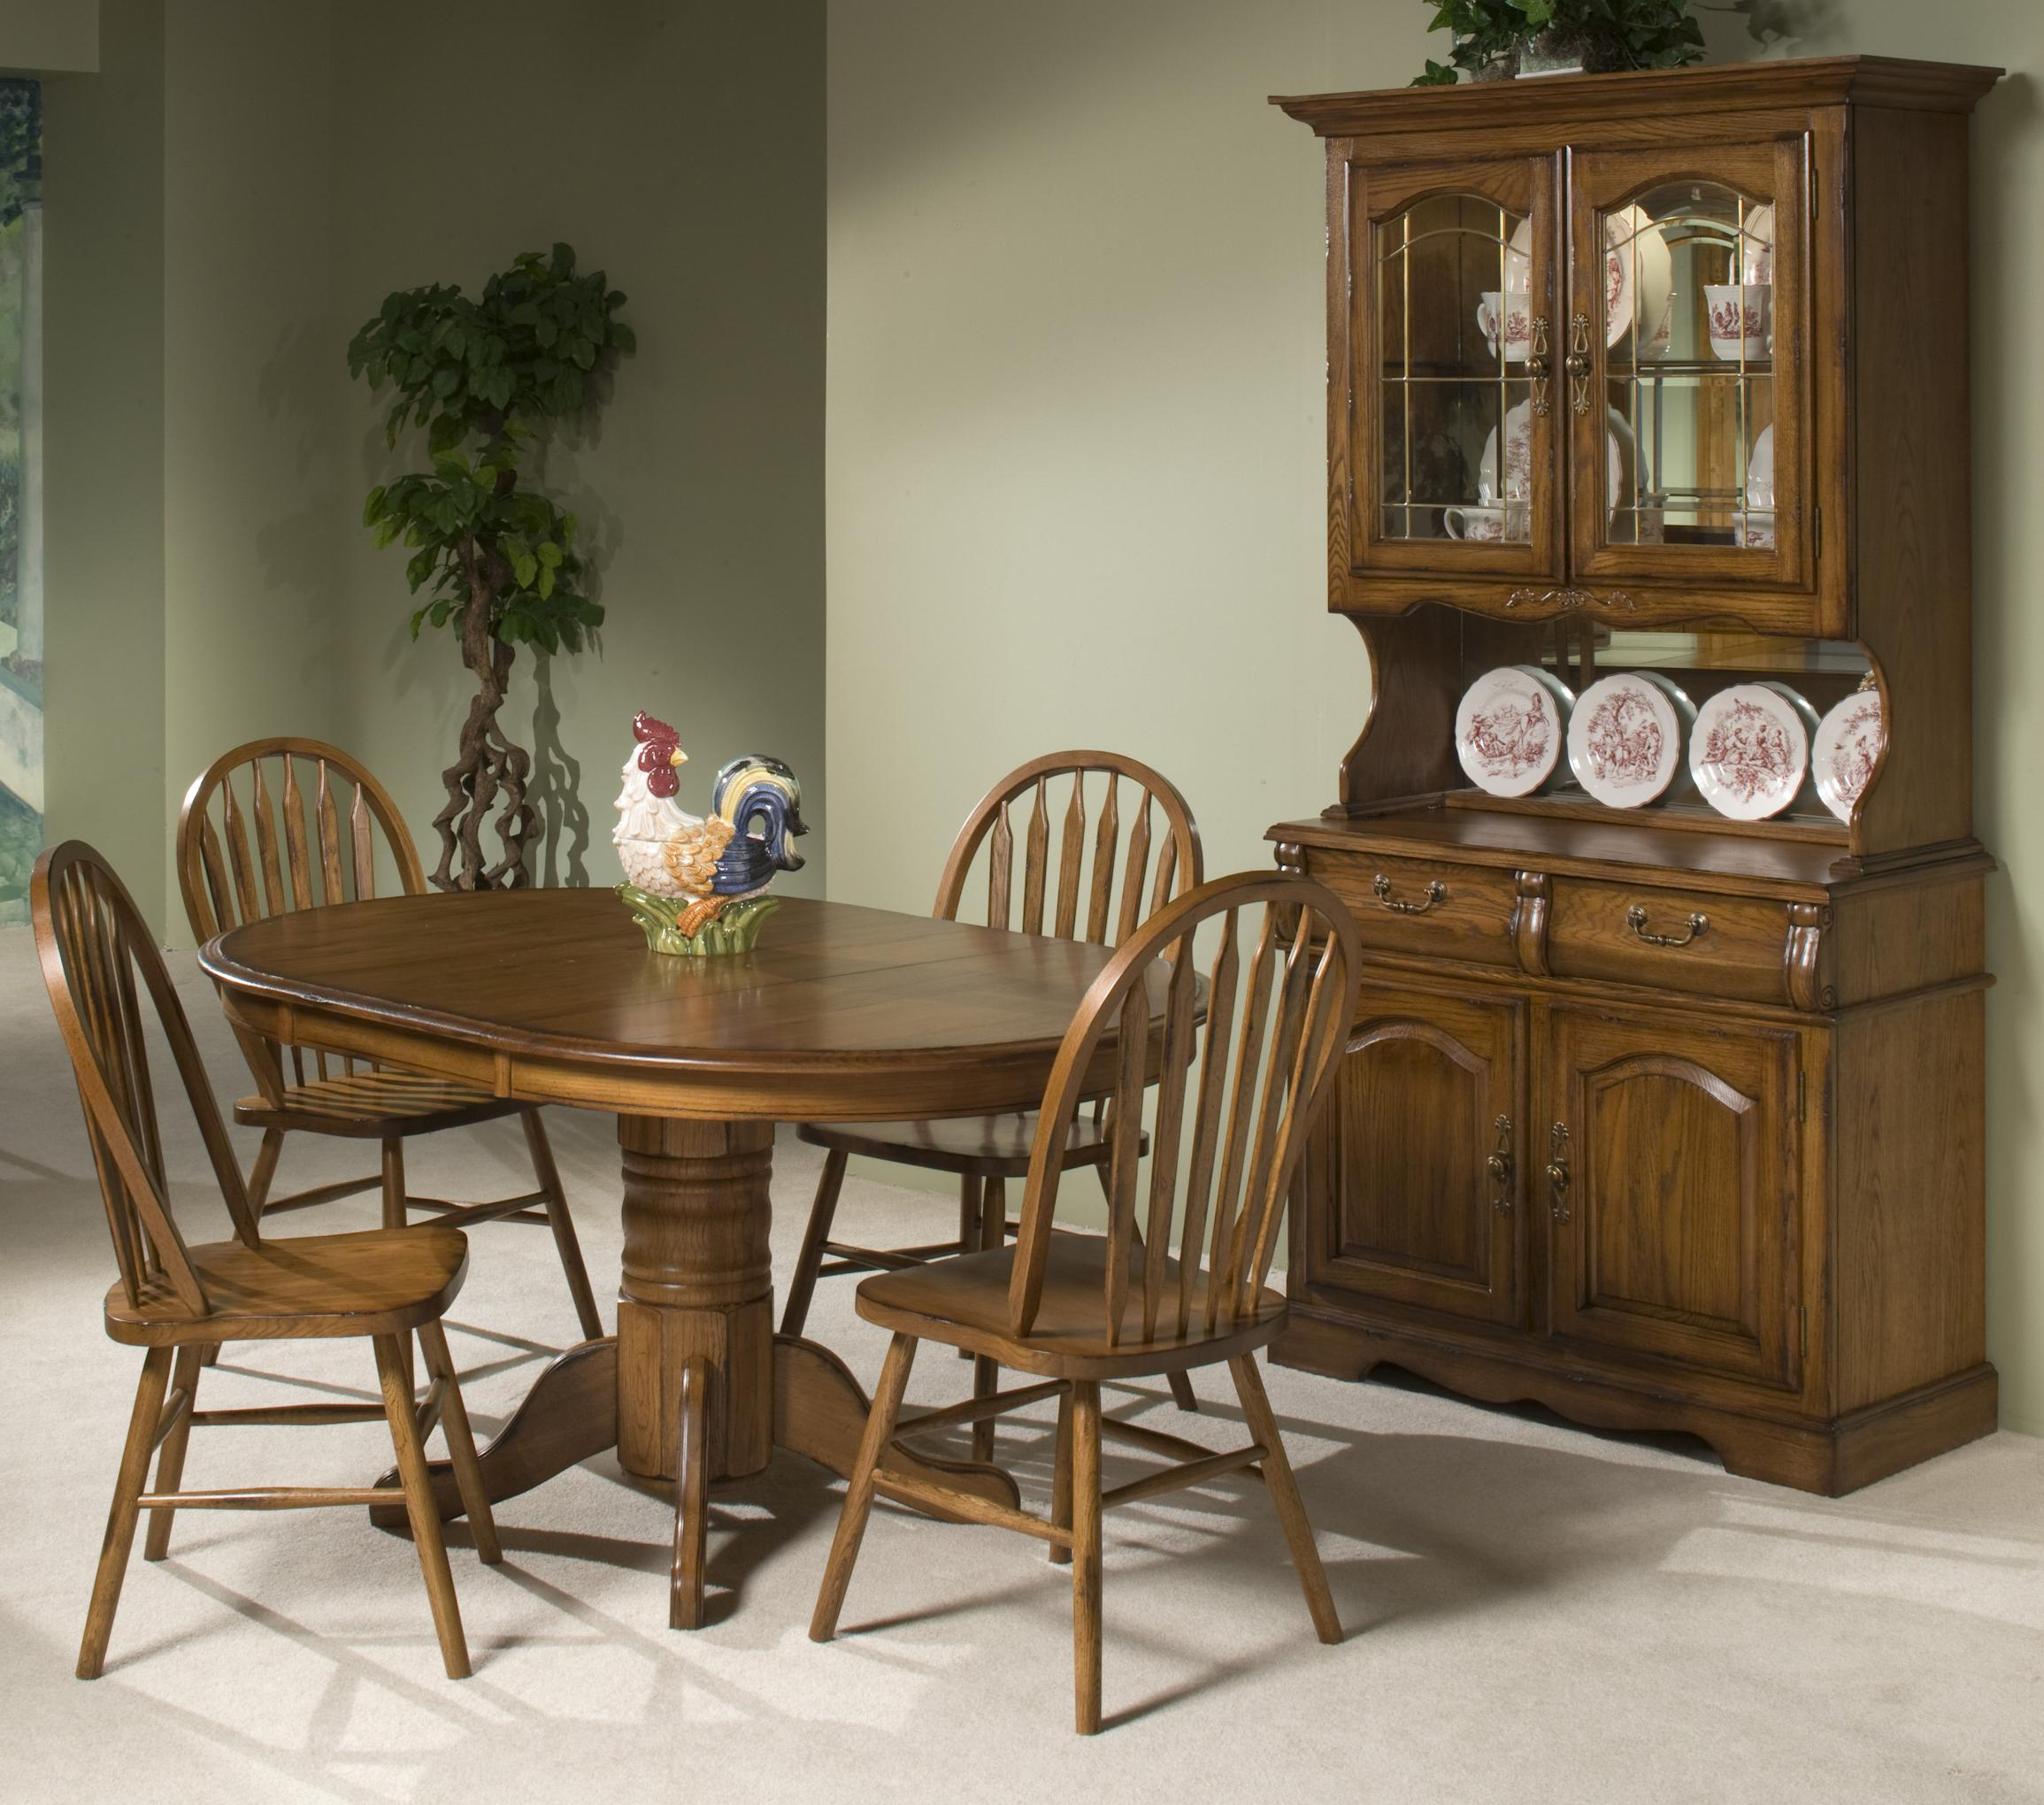 Intercon Classic Oak Casual Dining Room Group - Item Number: CO BRU Dining Room Group 2